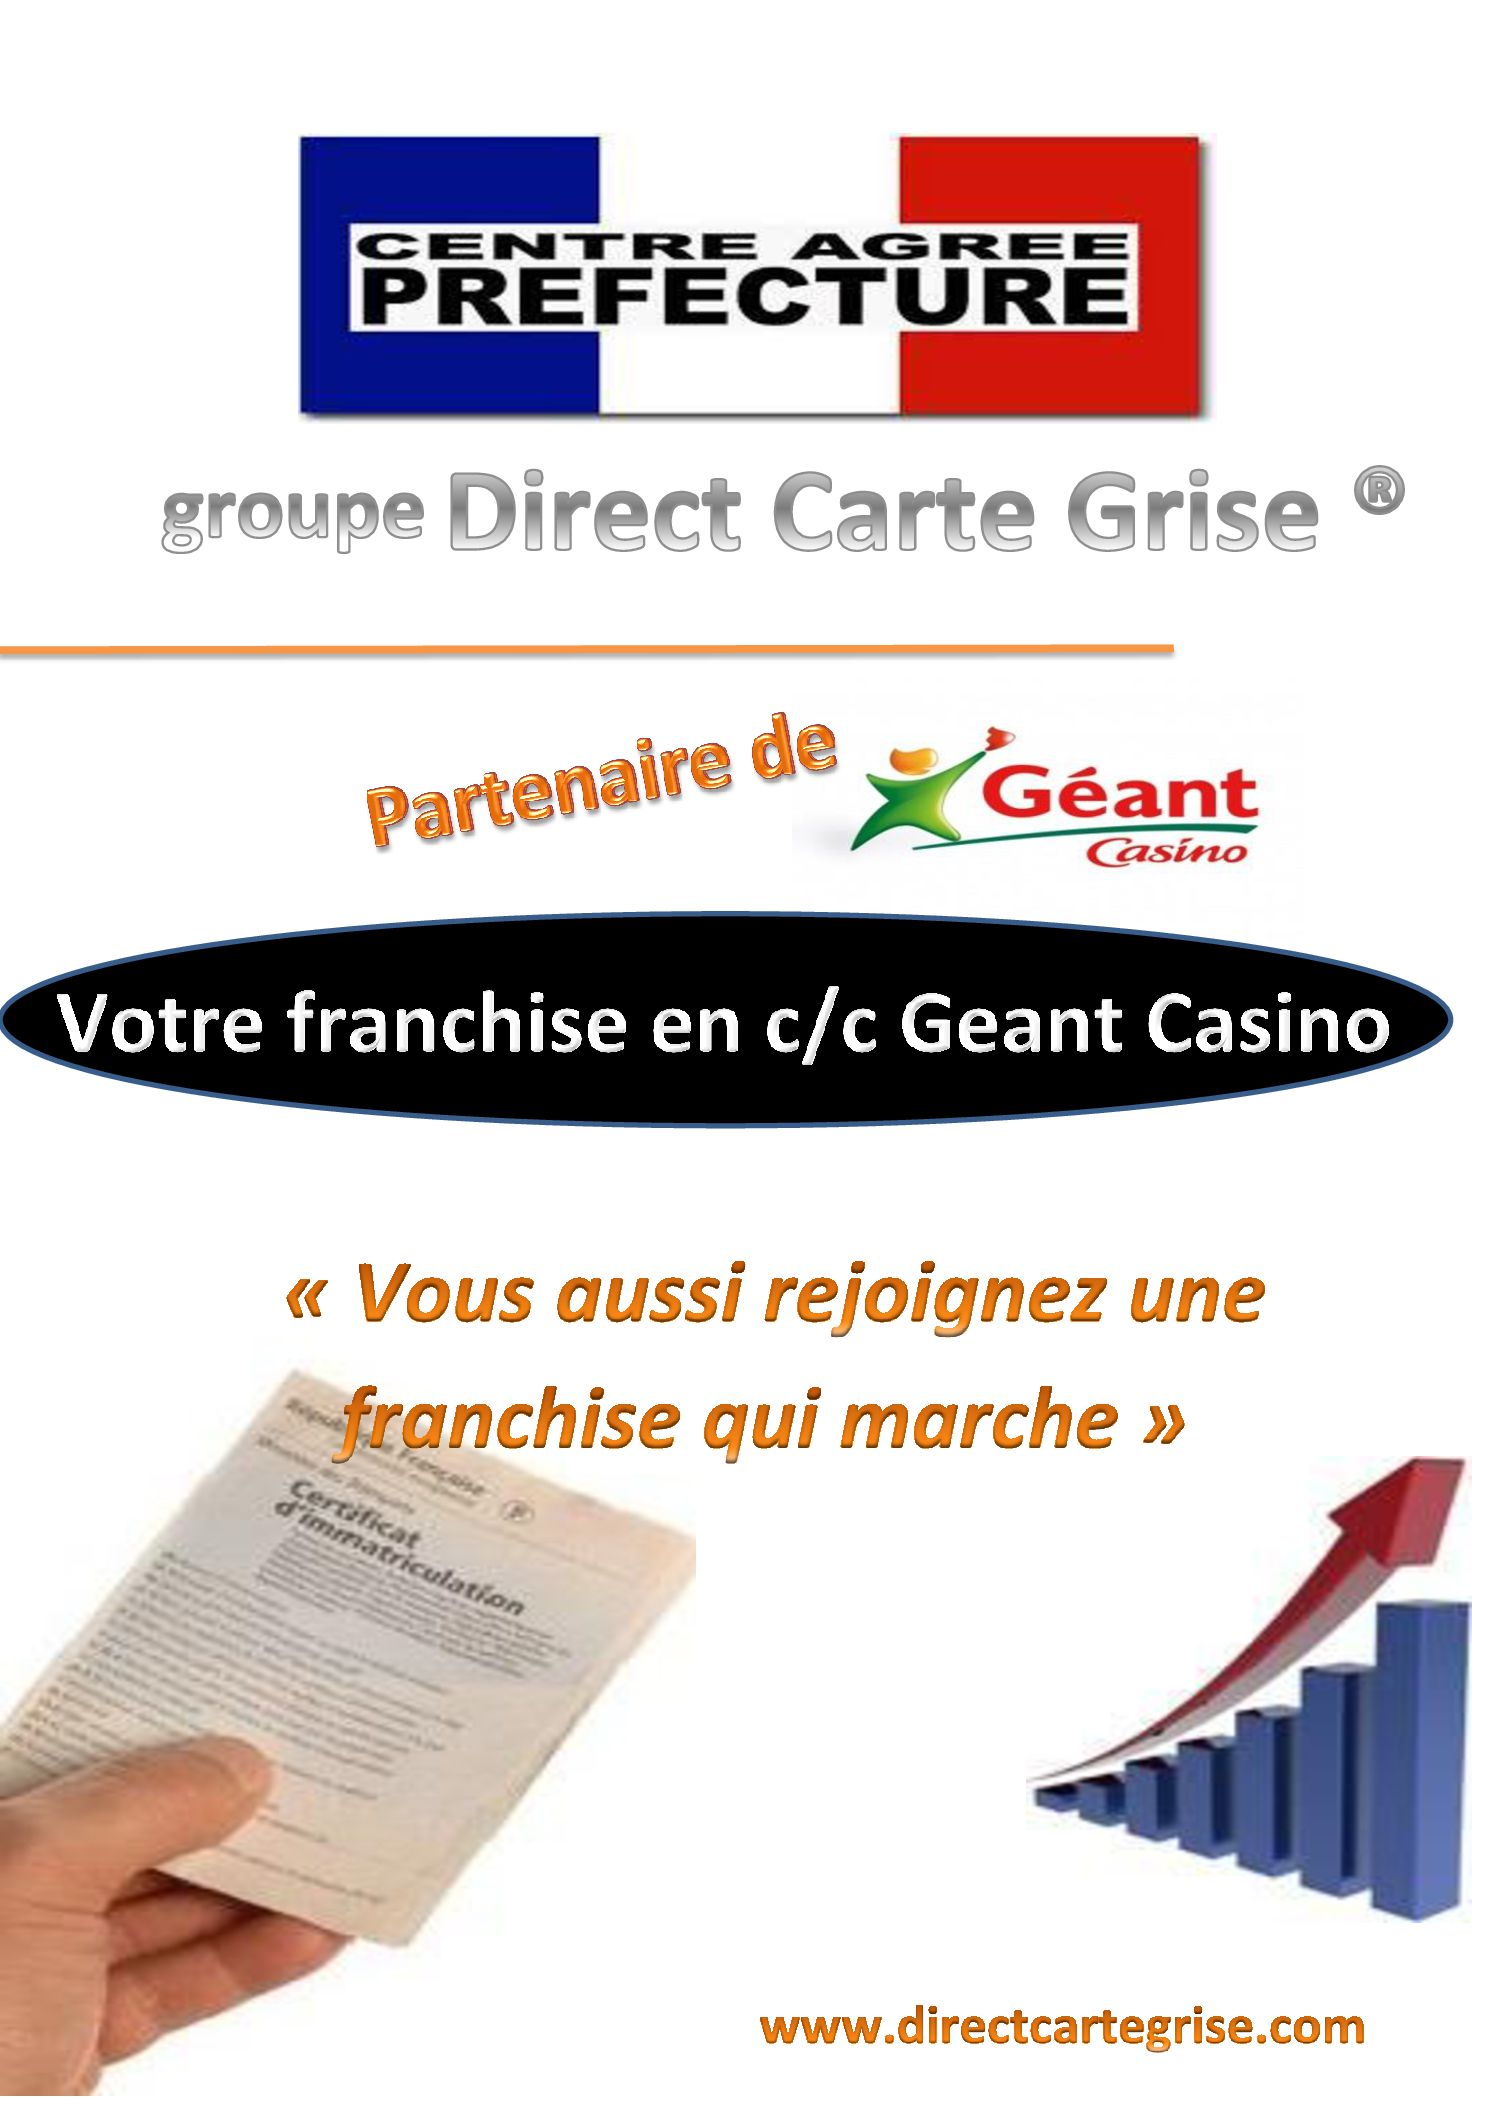 direct-carte-grise-casino-partenariat